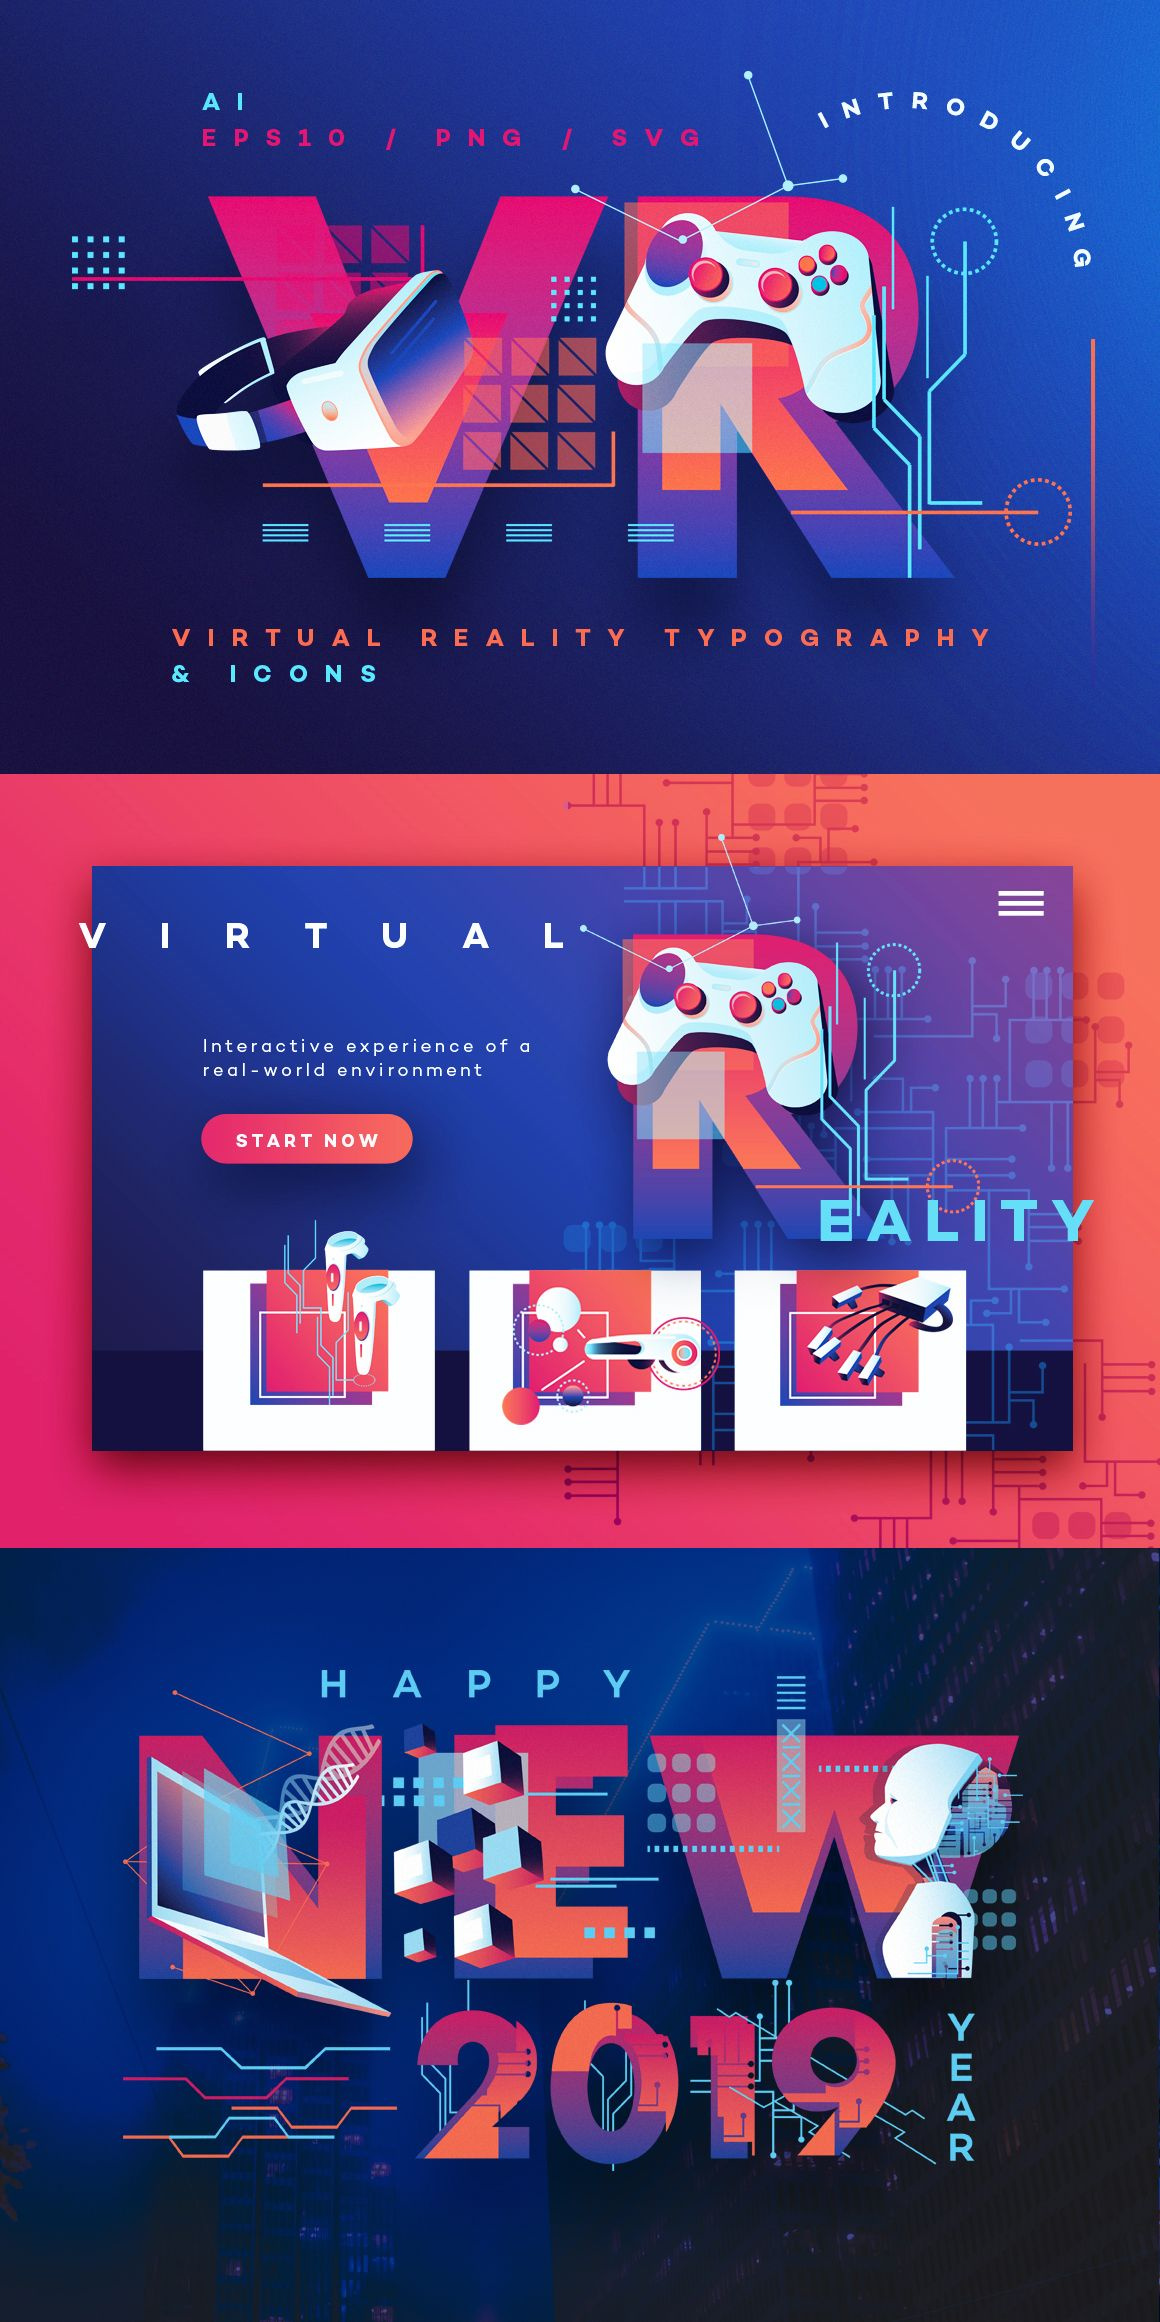 VR Icons and Typography Web design quotes, Magazine